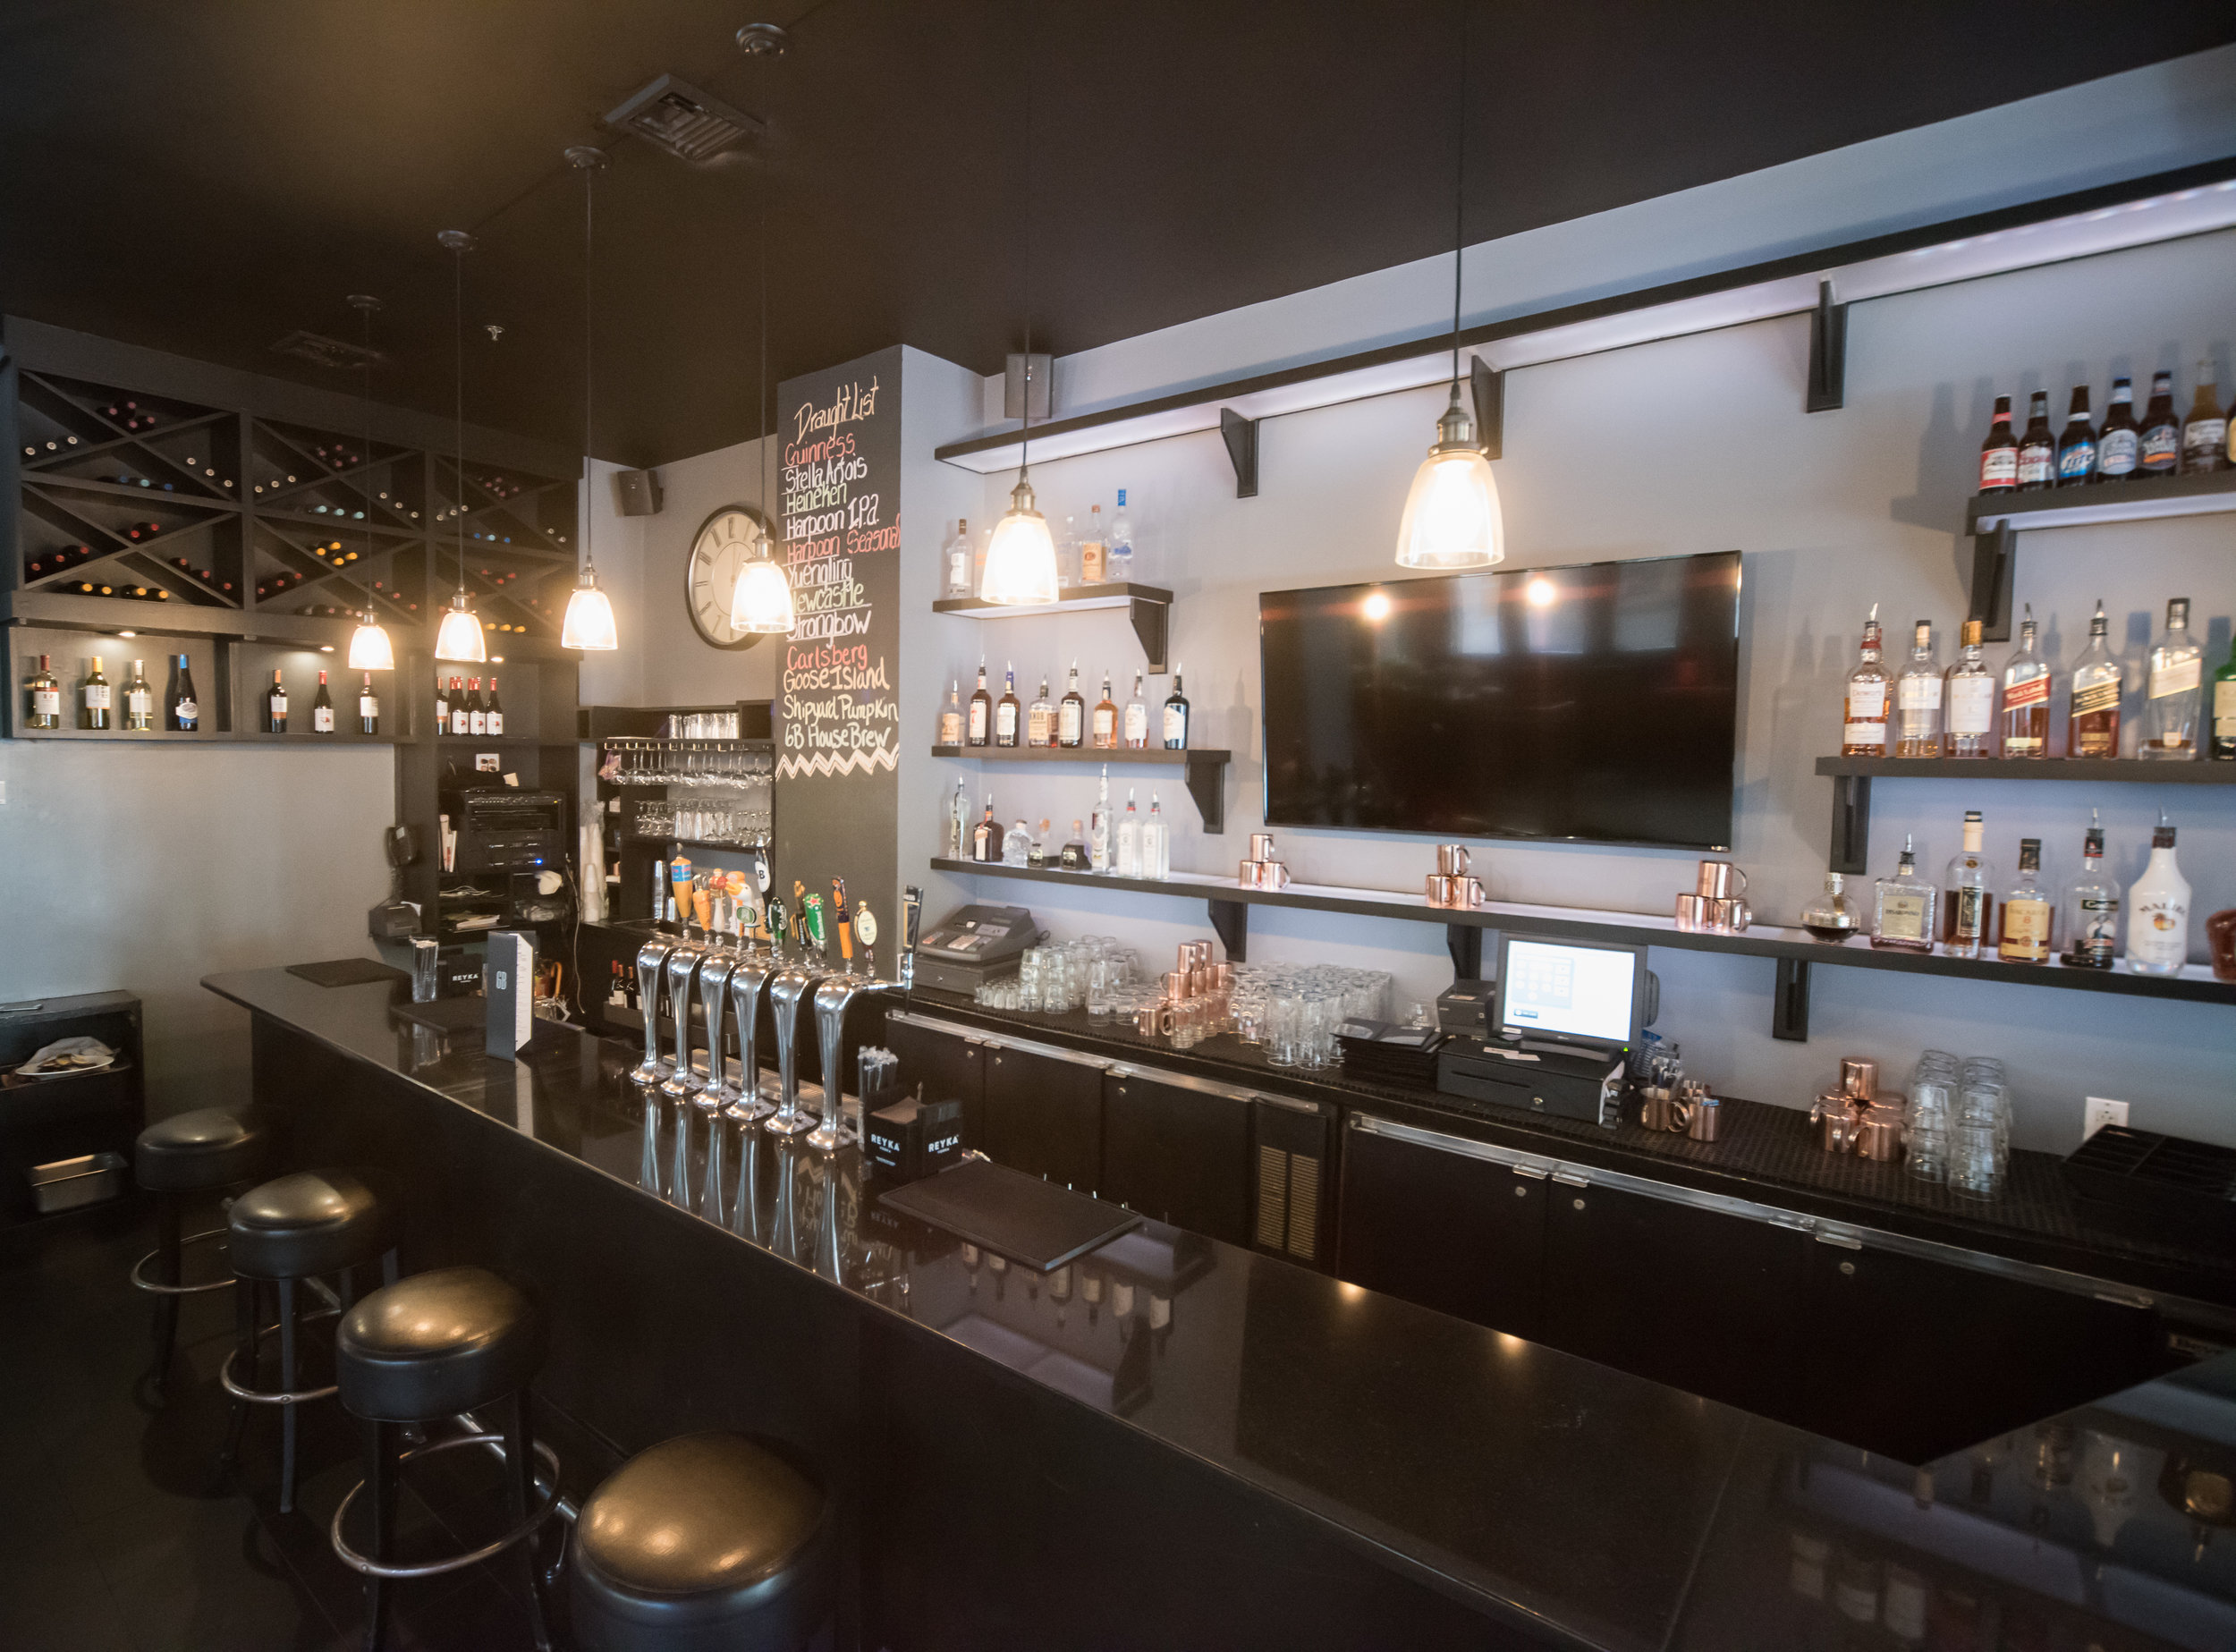 Bar at 6B Lounge, Boston's Beacon Hill